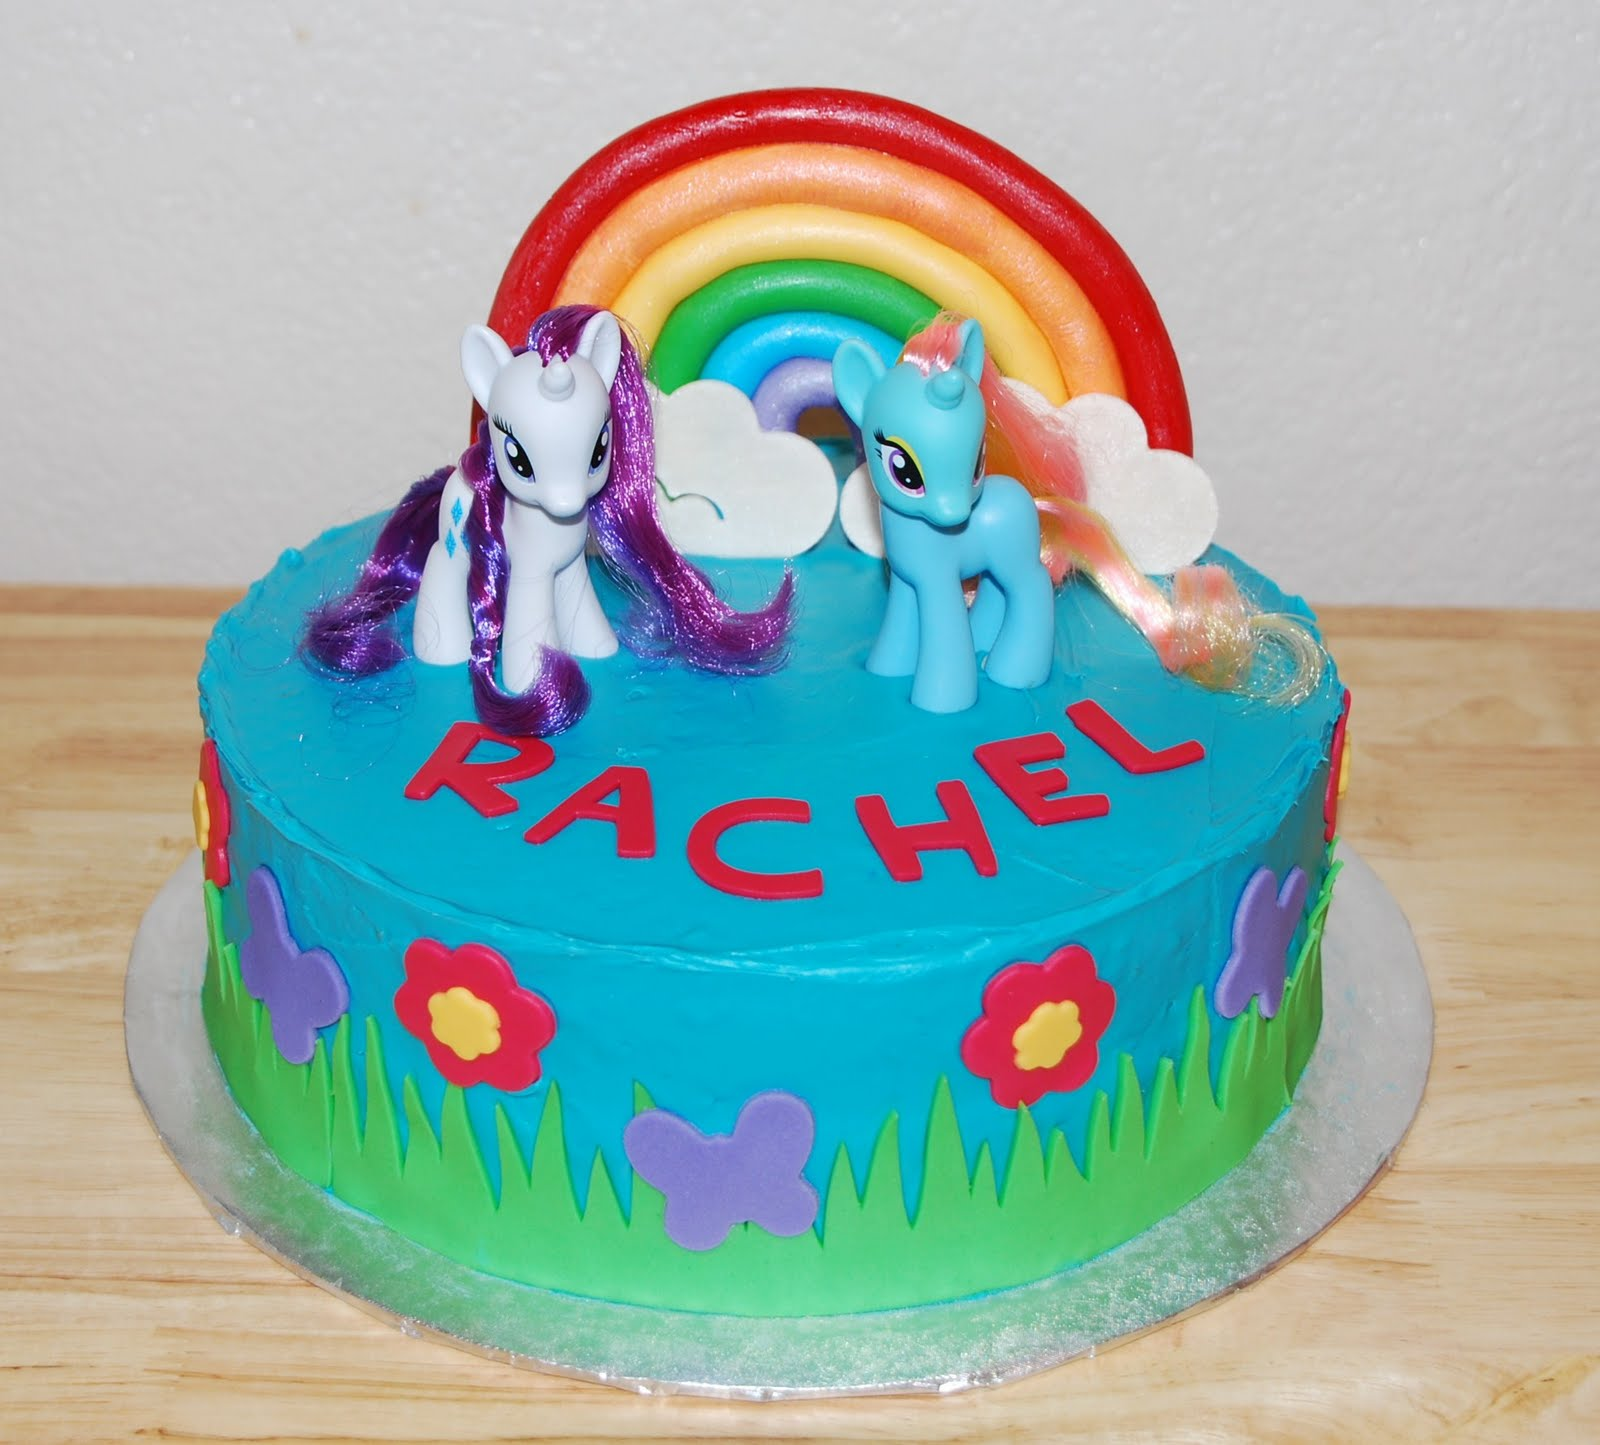 Creative Cakes By Rochelle: My Little Pony Cake